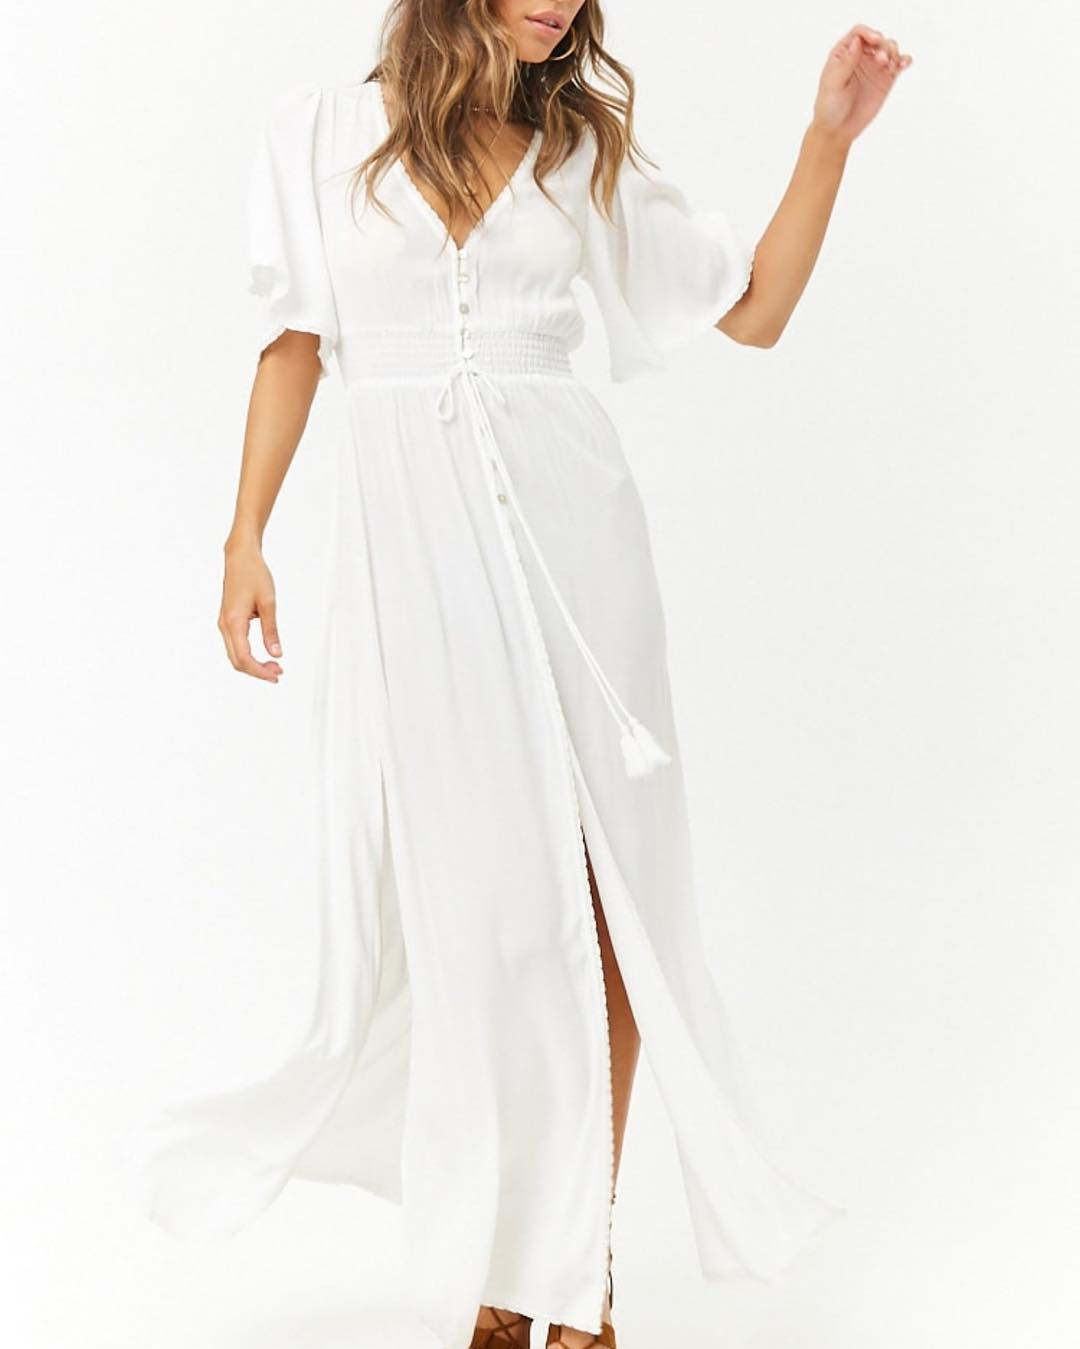 Simple White Maxi Dress With Front Slit For Warm Weather